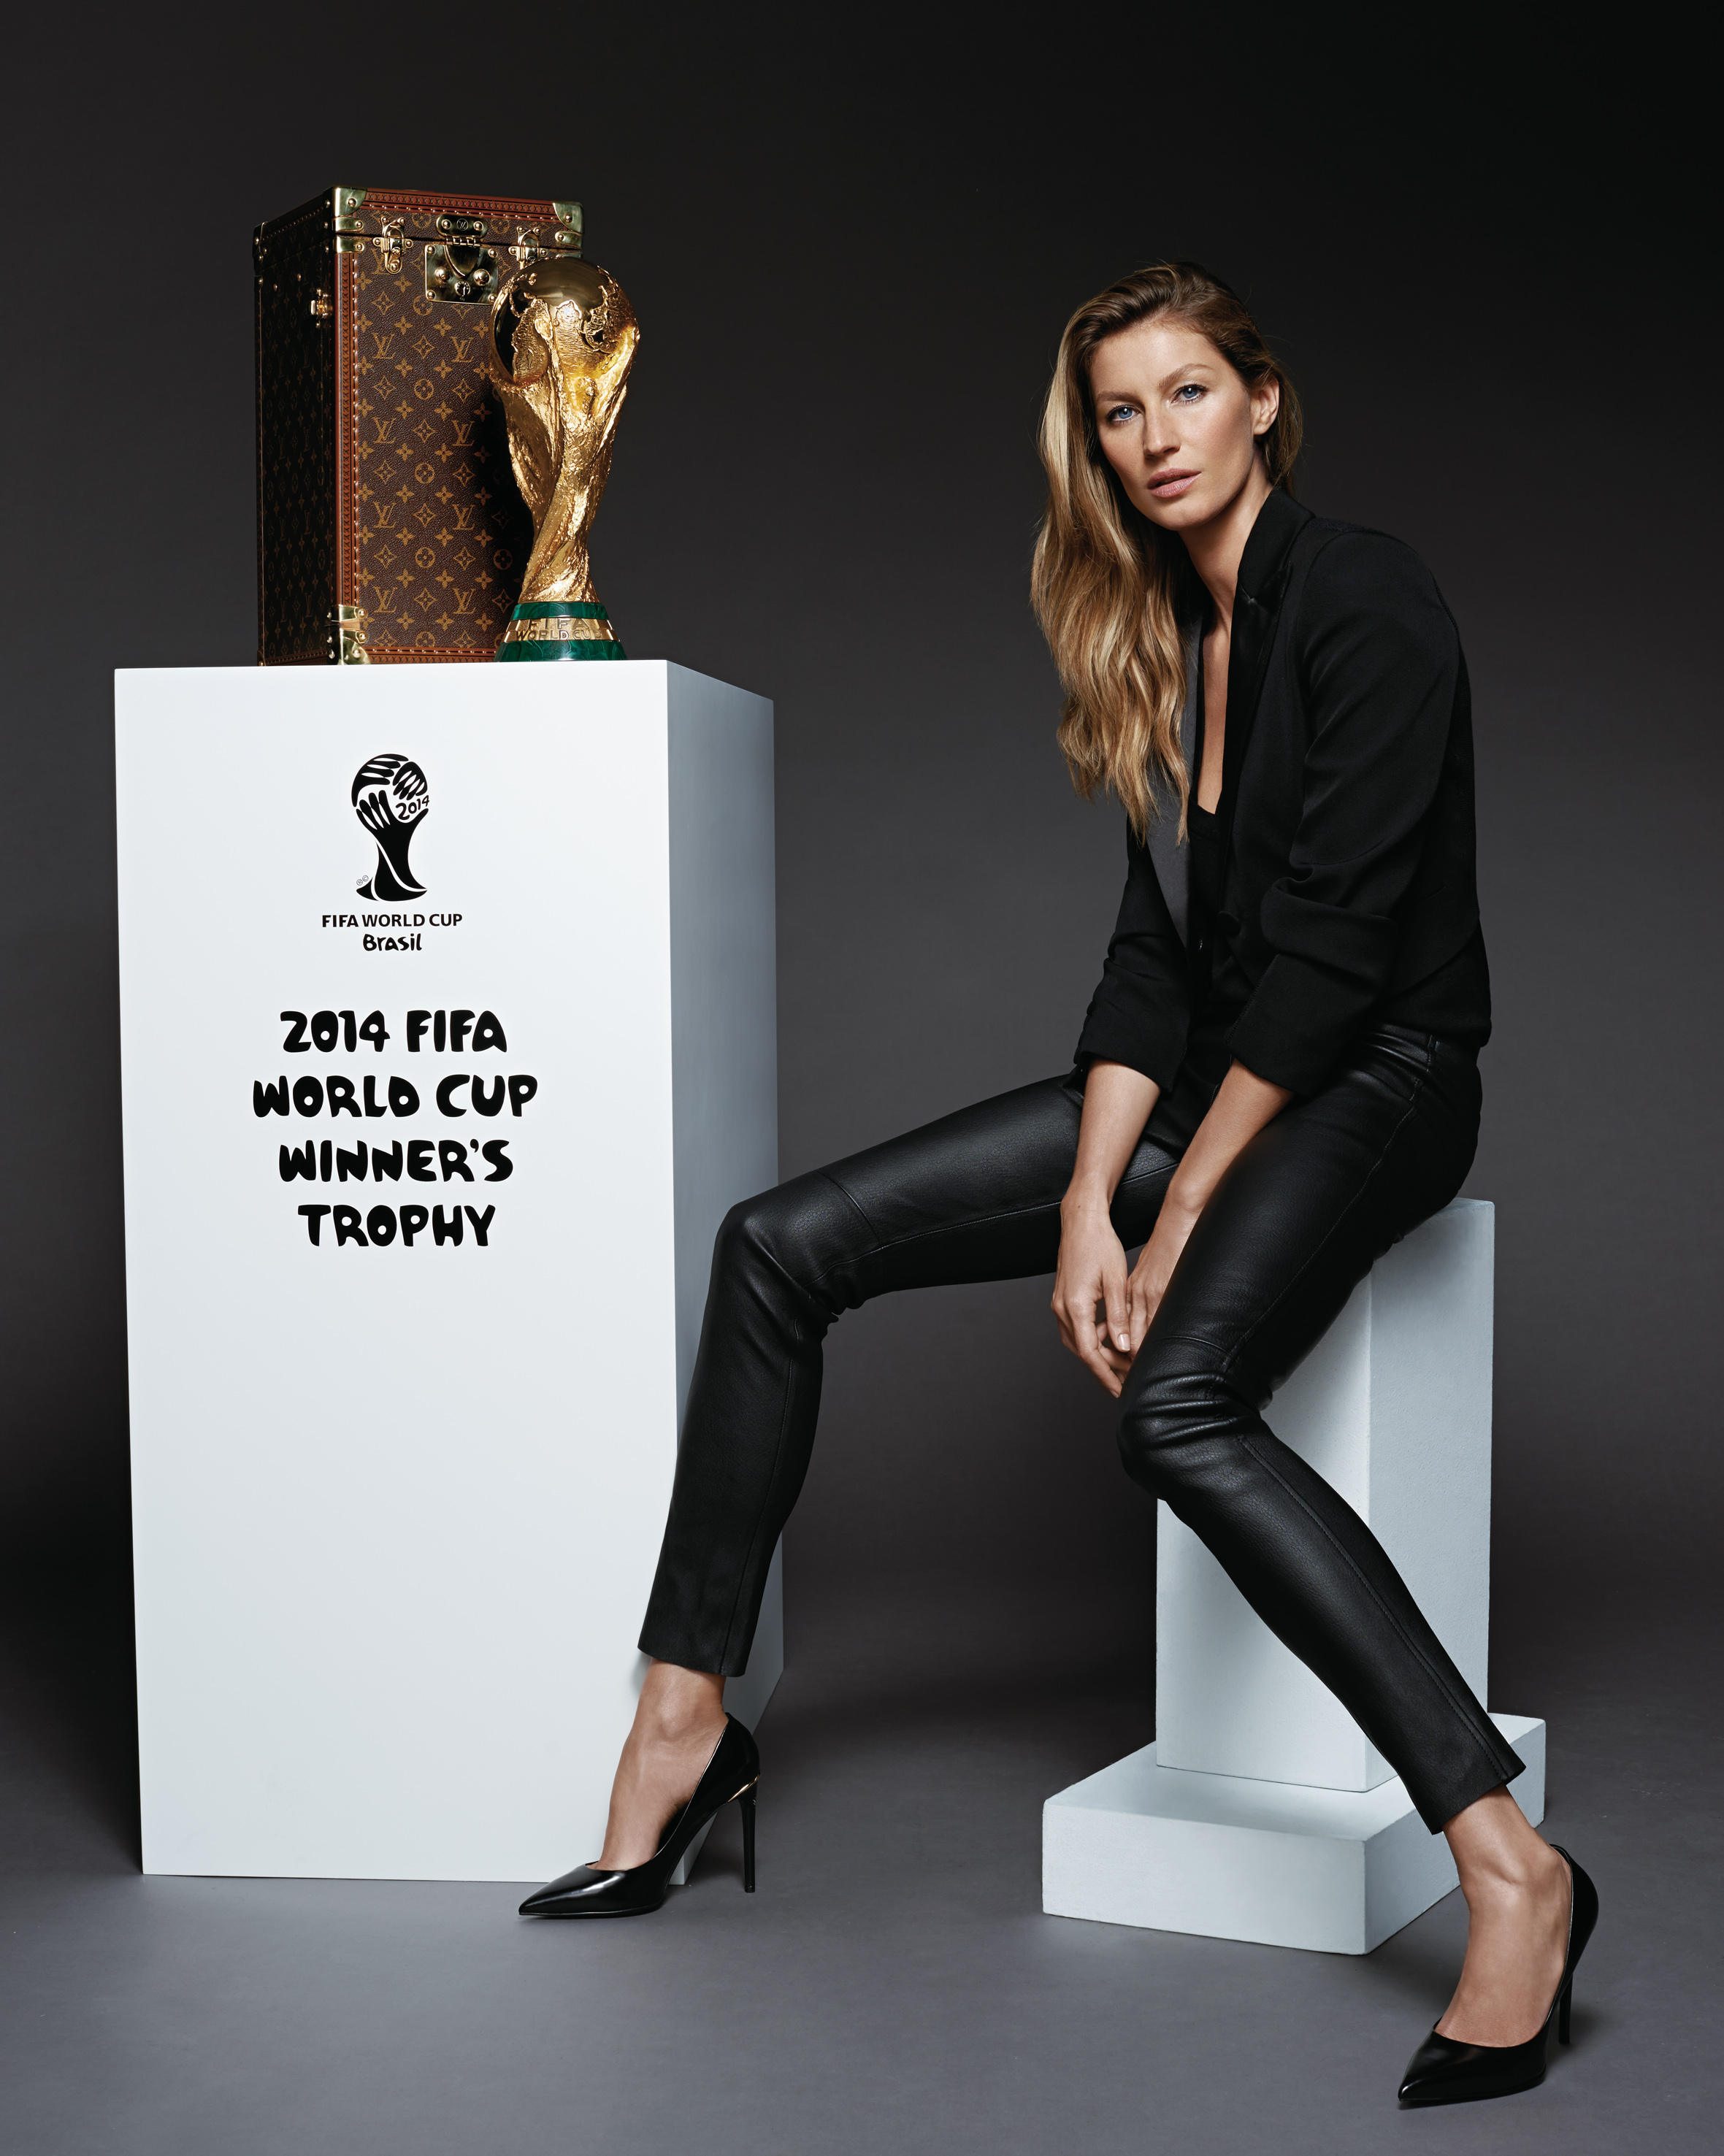 © Louis Vuitton Malletier - Kevin O'Brien - Gisele Bündchen & Louis Vuitton Trophy Case